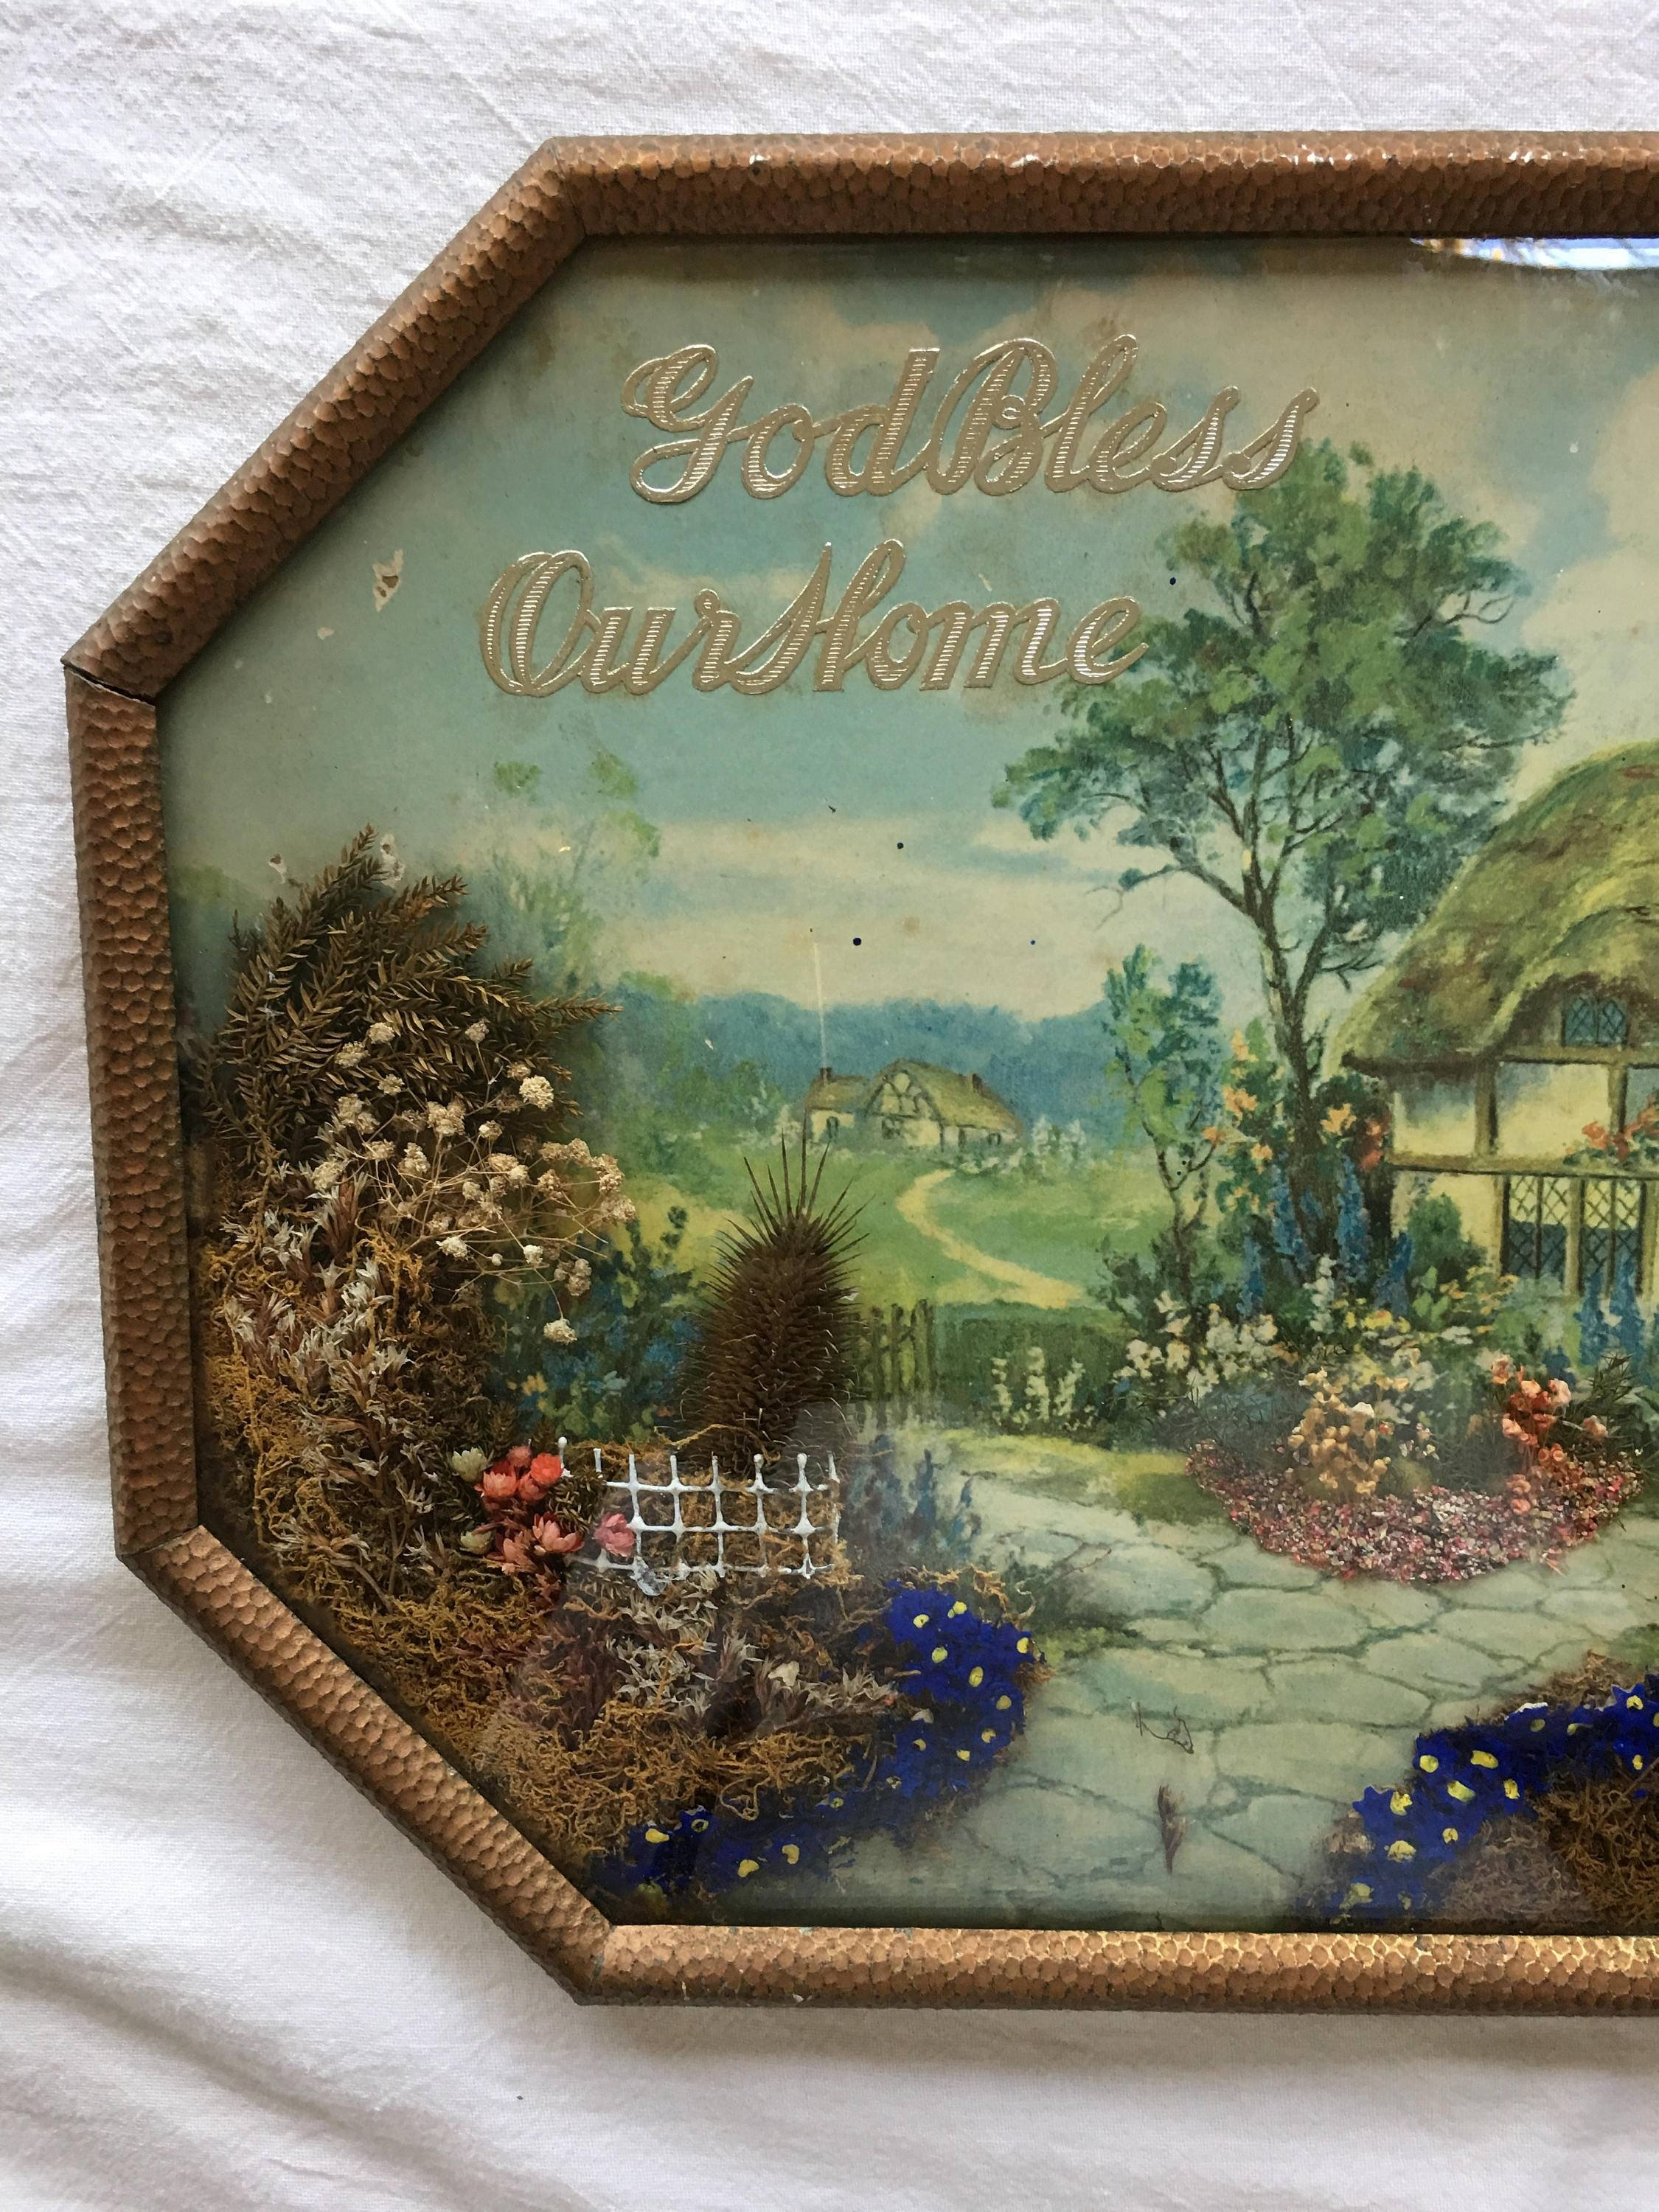 Vintage 3D Wall Art, God Bless Our Home, Dried Flowers, Cottage Regarding Most Up To Date Vintage 3D Wall Art (View 15 of 20)